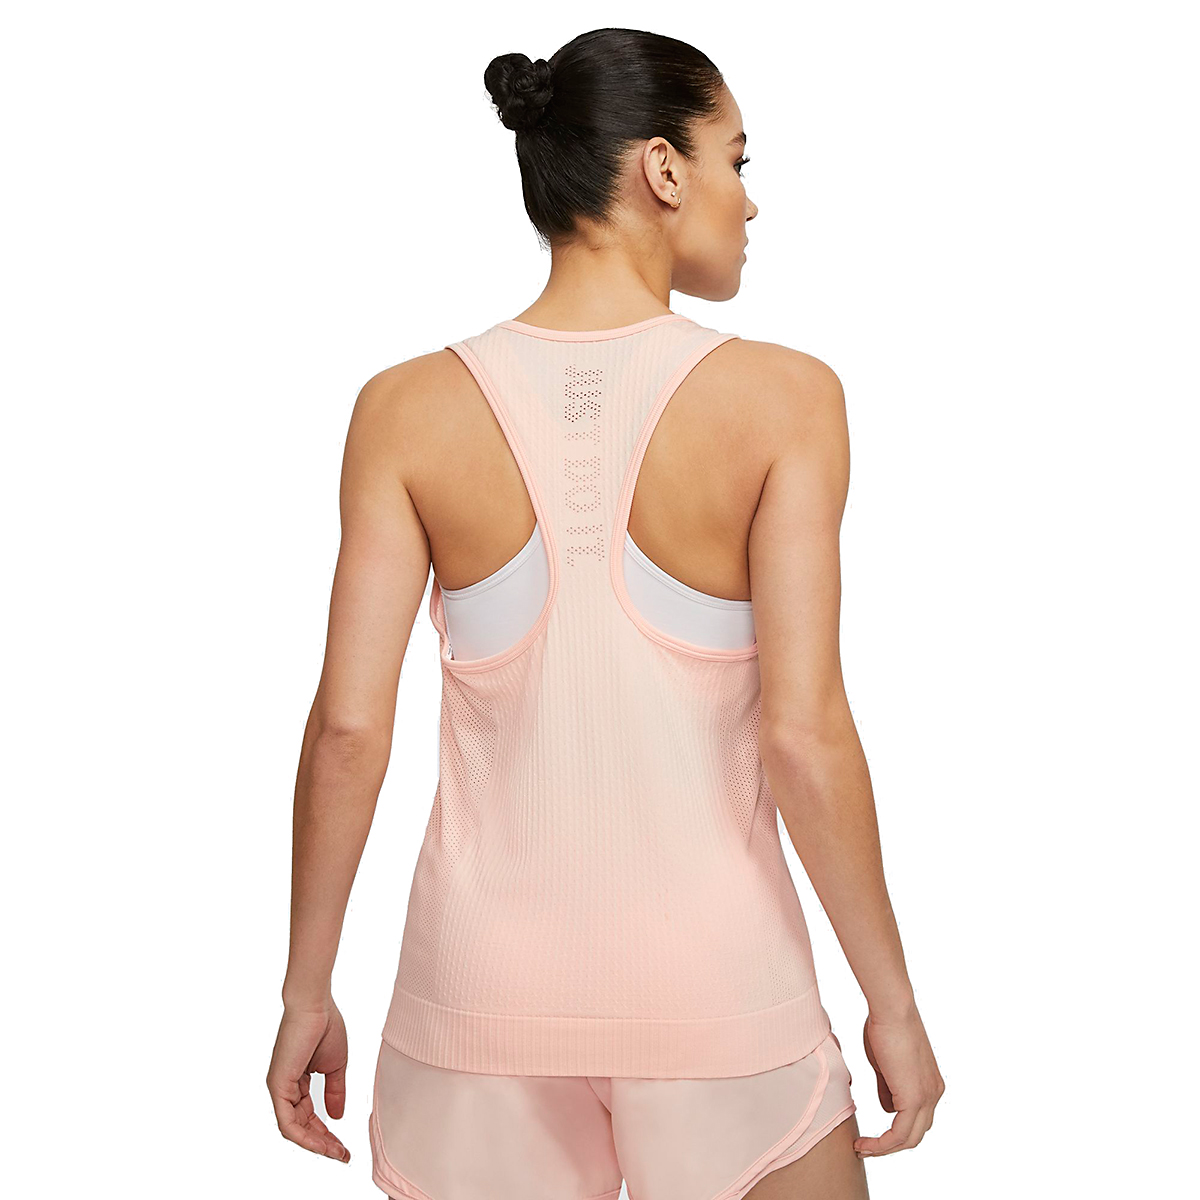 Women's Nike Infinite Running Tank - Color: Washed Coral - Size: XS, Washed Coral, large, image 2